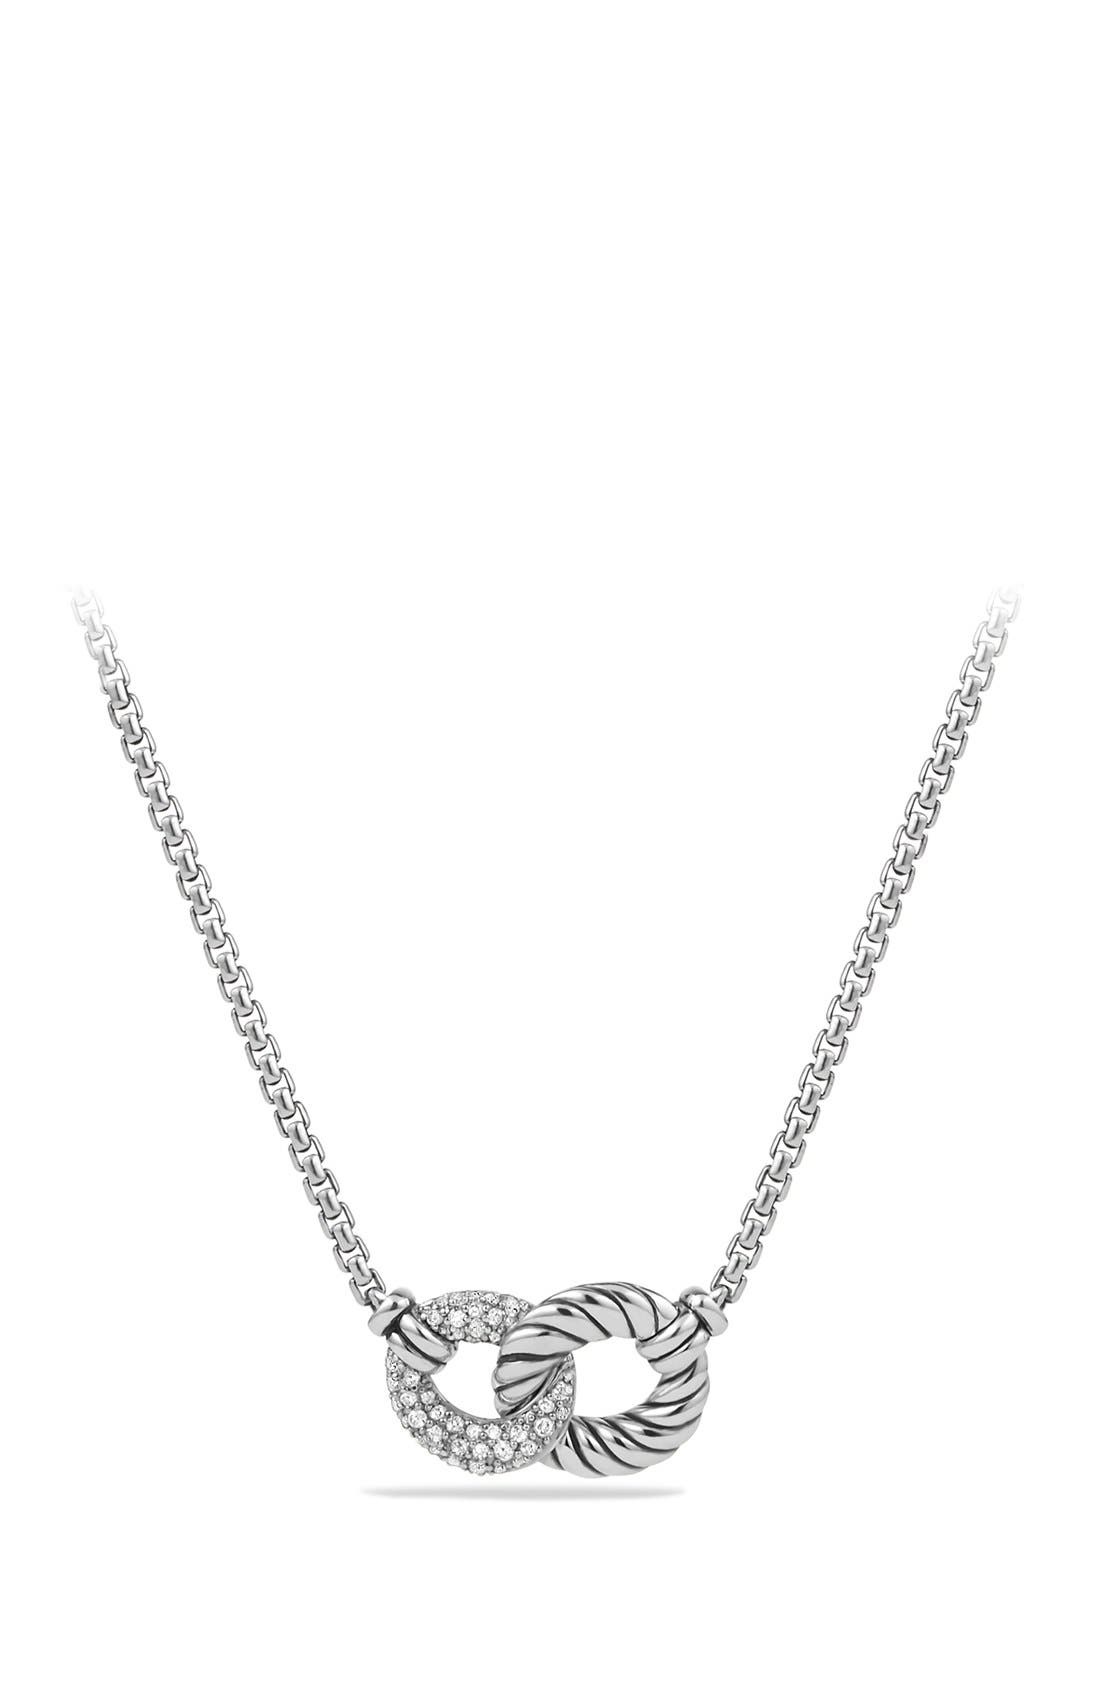 Main Image - David Yurman 'Belmont' Necklace with Diamonds